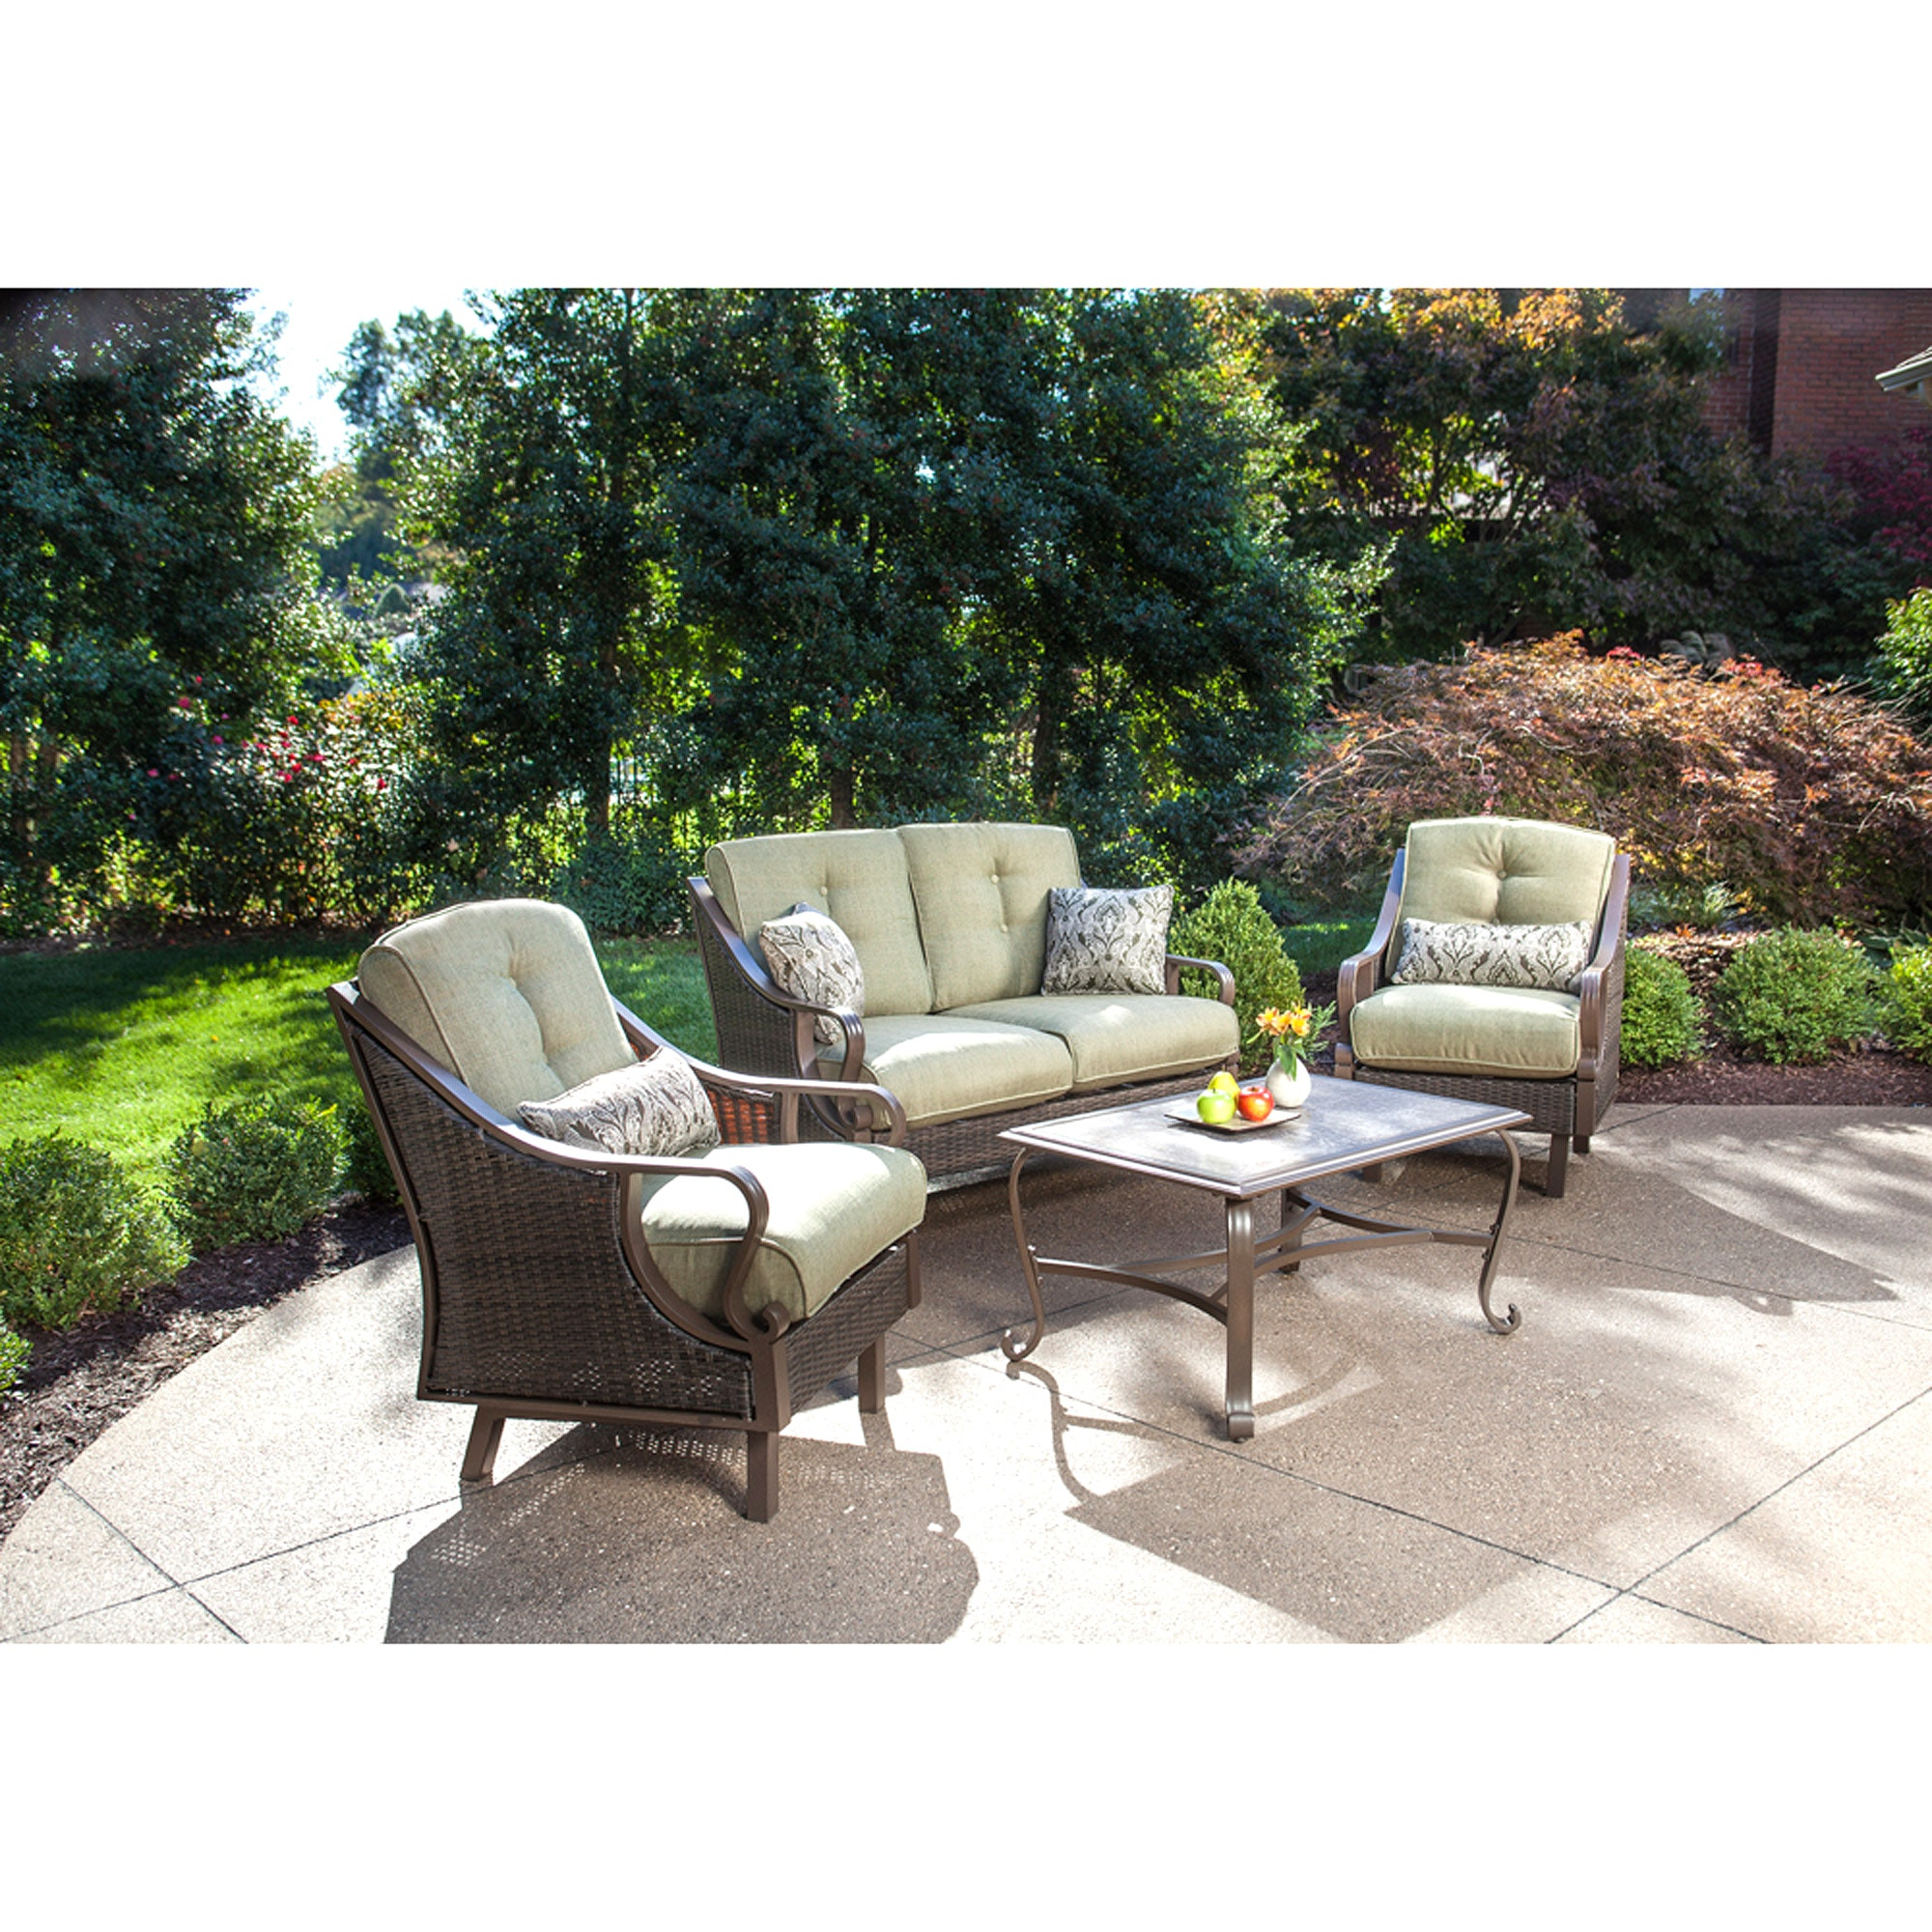 Best ideas about Indoor Patio Furniture . Save or Pin Wicker Indoor Patio Furniture Setsindoor Clearance Sets Now.